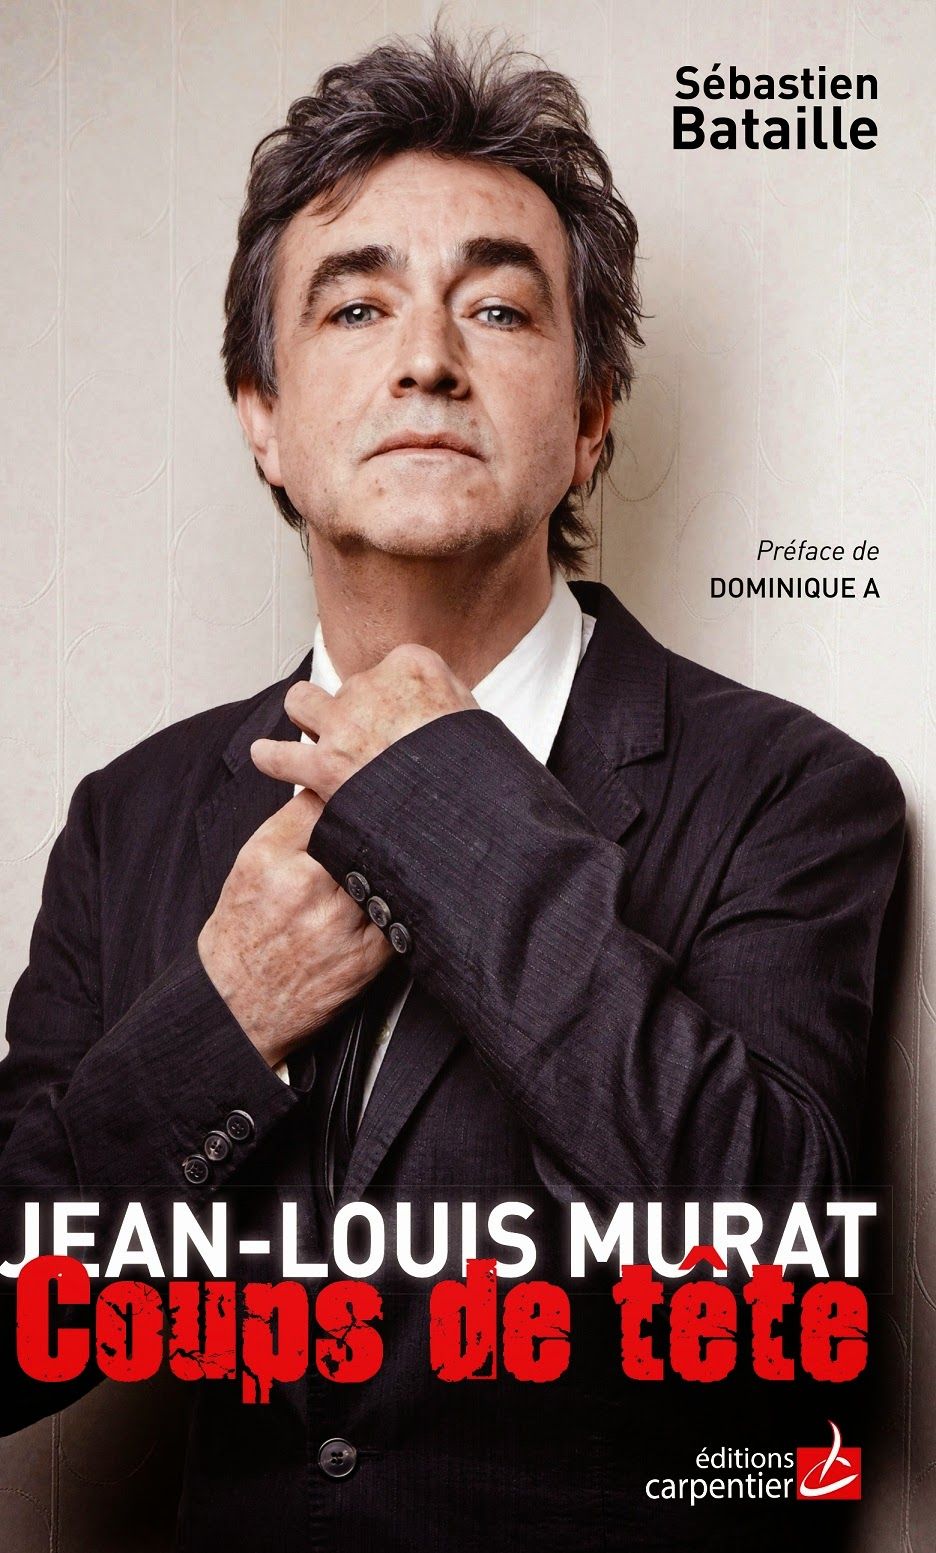 interview sebastien bataille, interview jean-louis murat coups de tête, livre jean-louis murat, jean-louis murat coups de tête, biographie jean-louis murat, yann boulègue, blog éditions carpentier